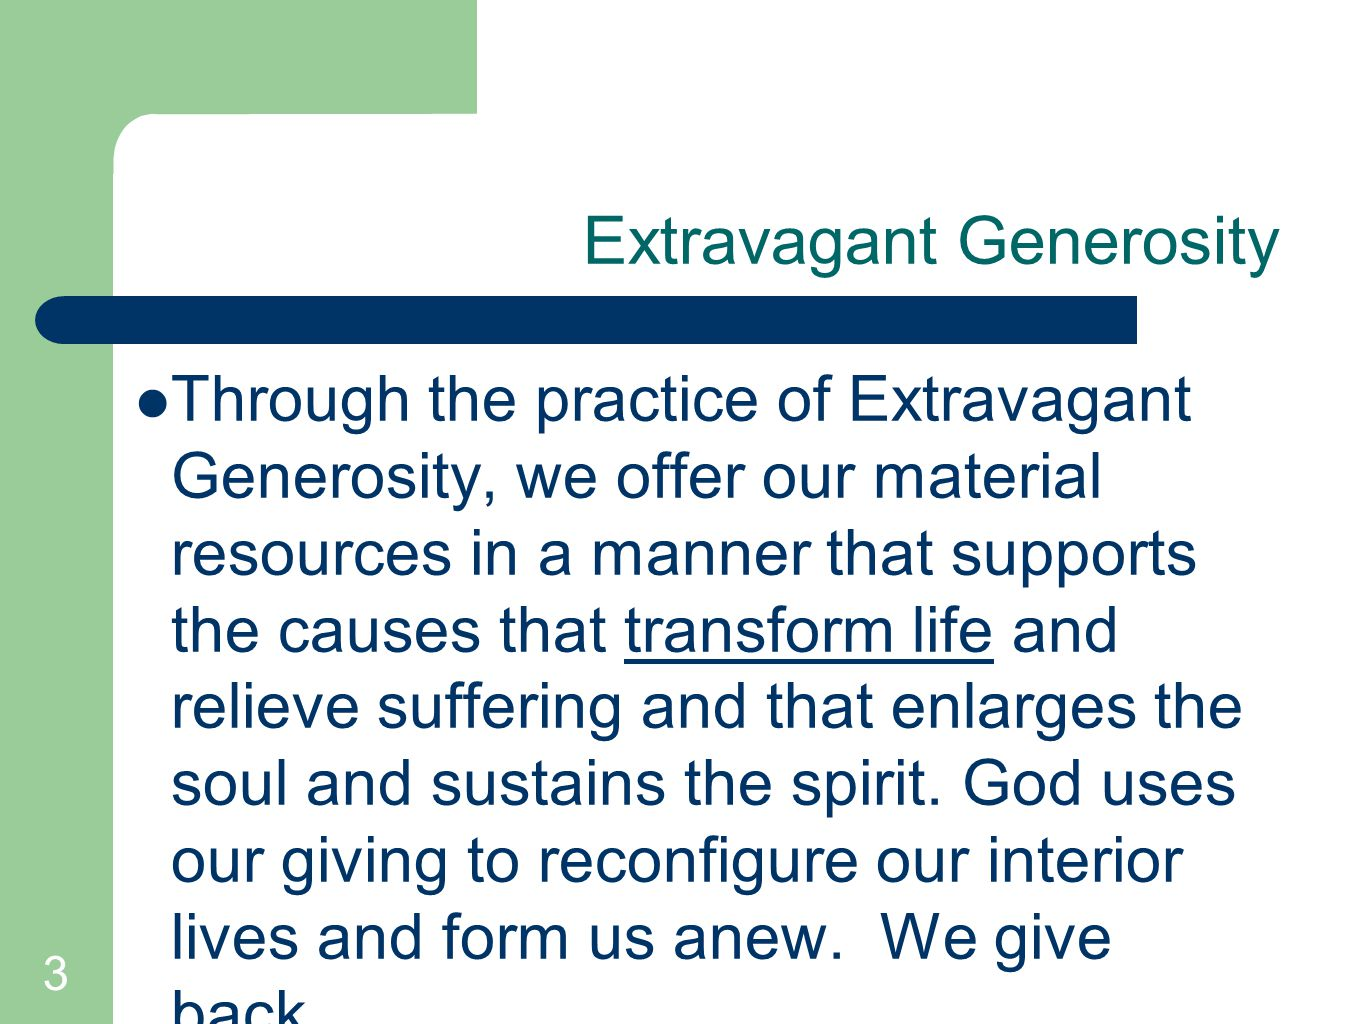 3 Extravagant Generosity Through the practice of Extravagant Generosity, we offer our material resources in a manner that supports the causes that transform life and relieve suffering and that enlarges the soul and sustains the spirit.